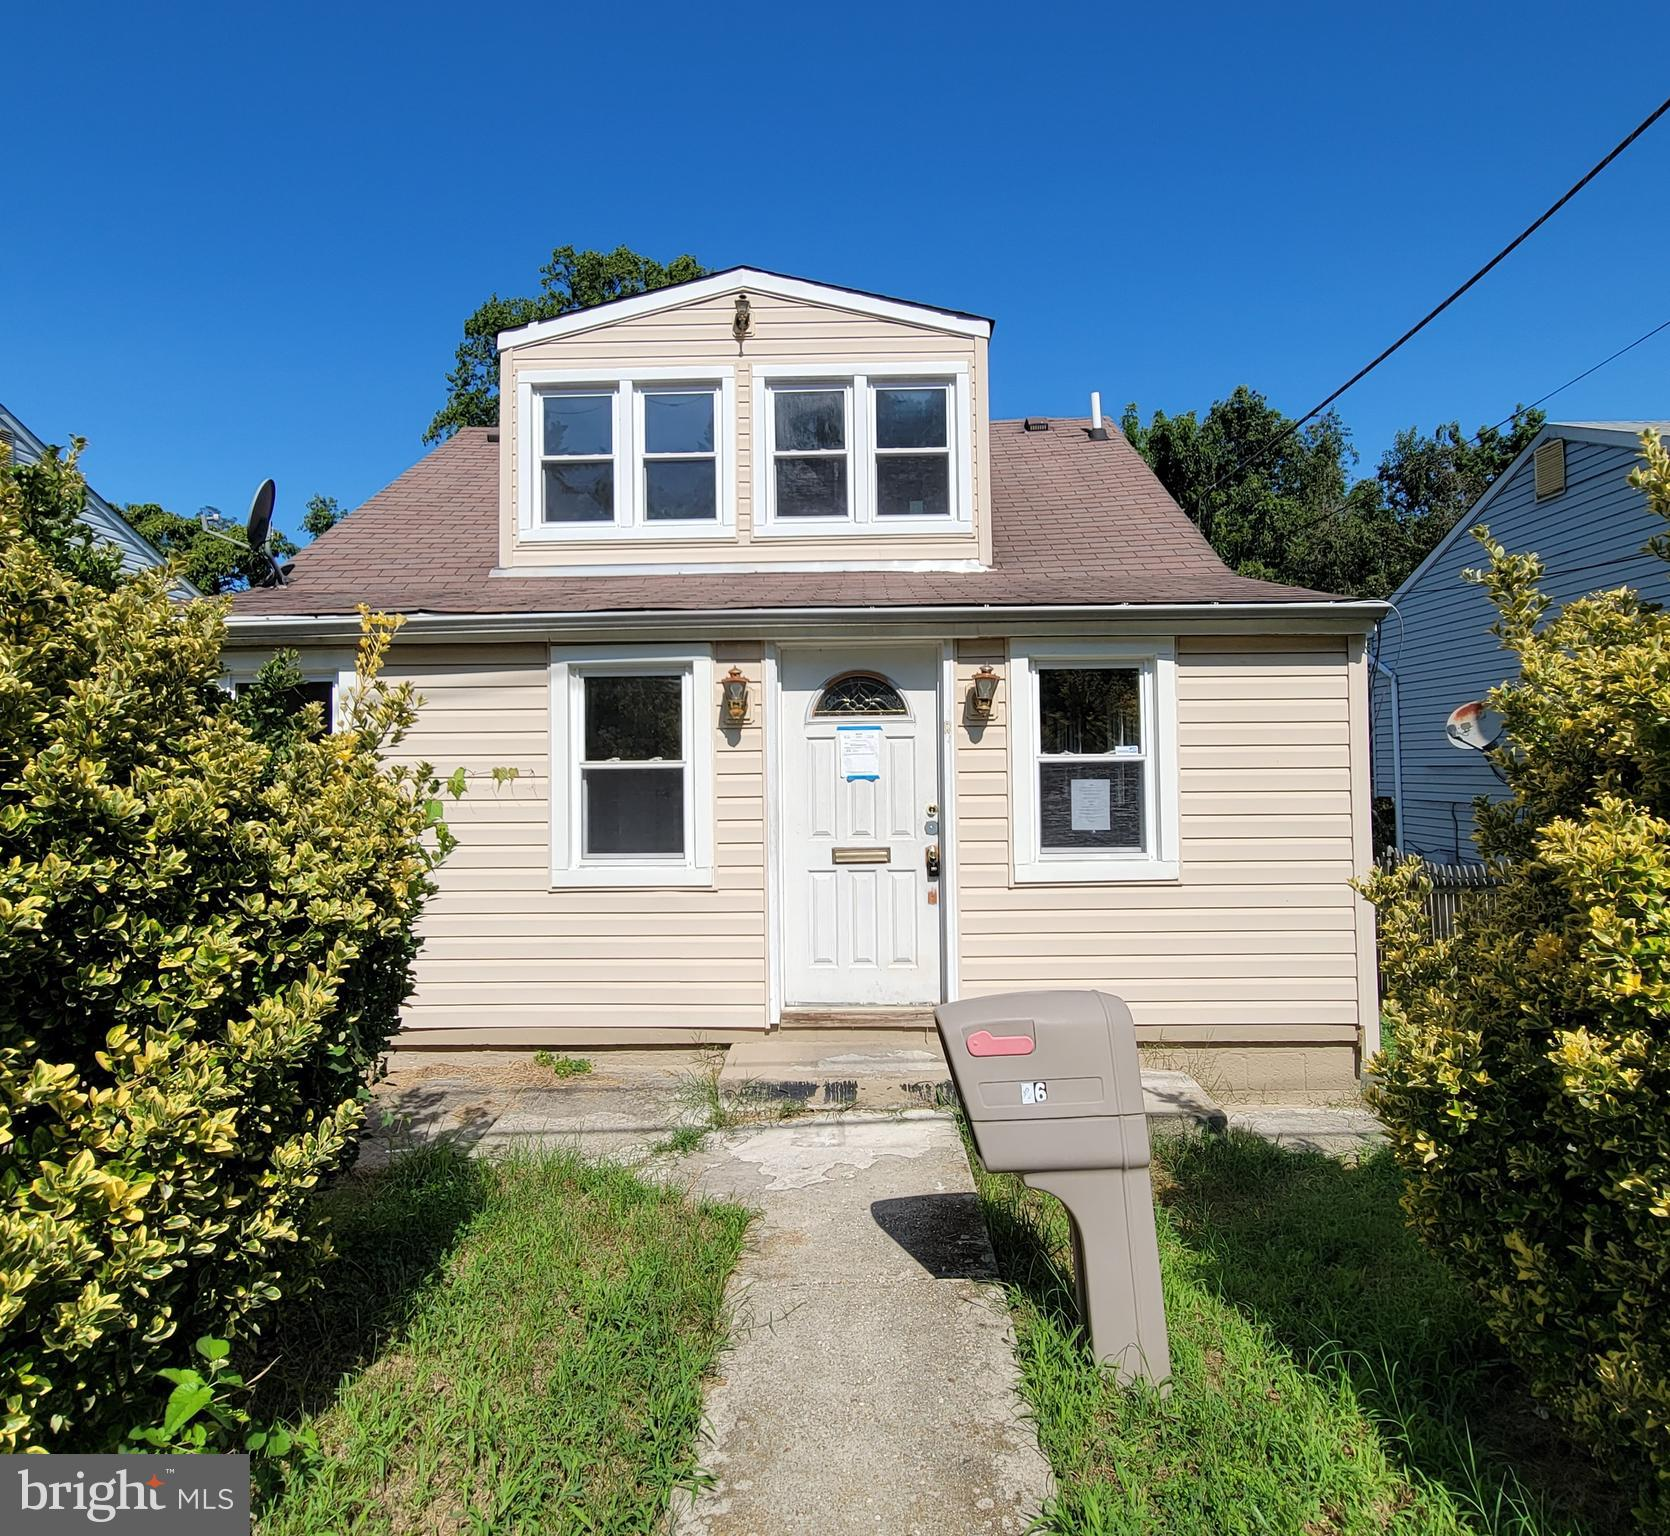 Well located property in close to DC.  Three level  house with rear addition and deep lot. Features